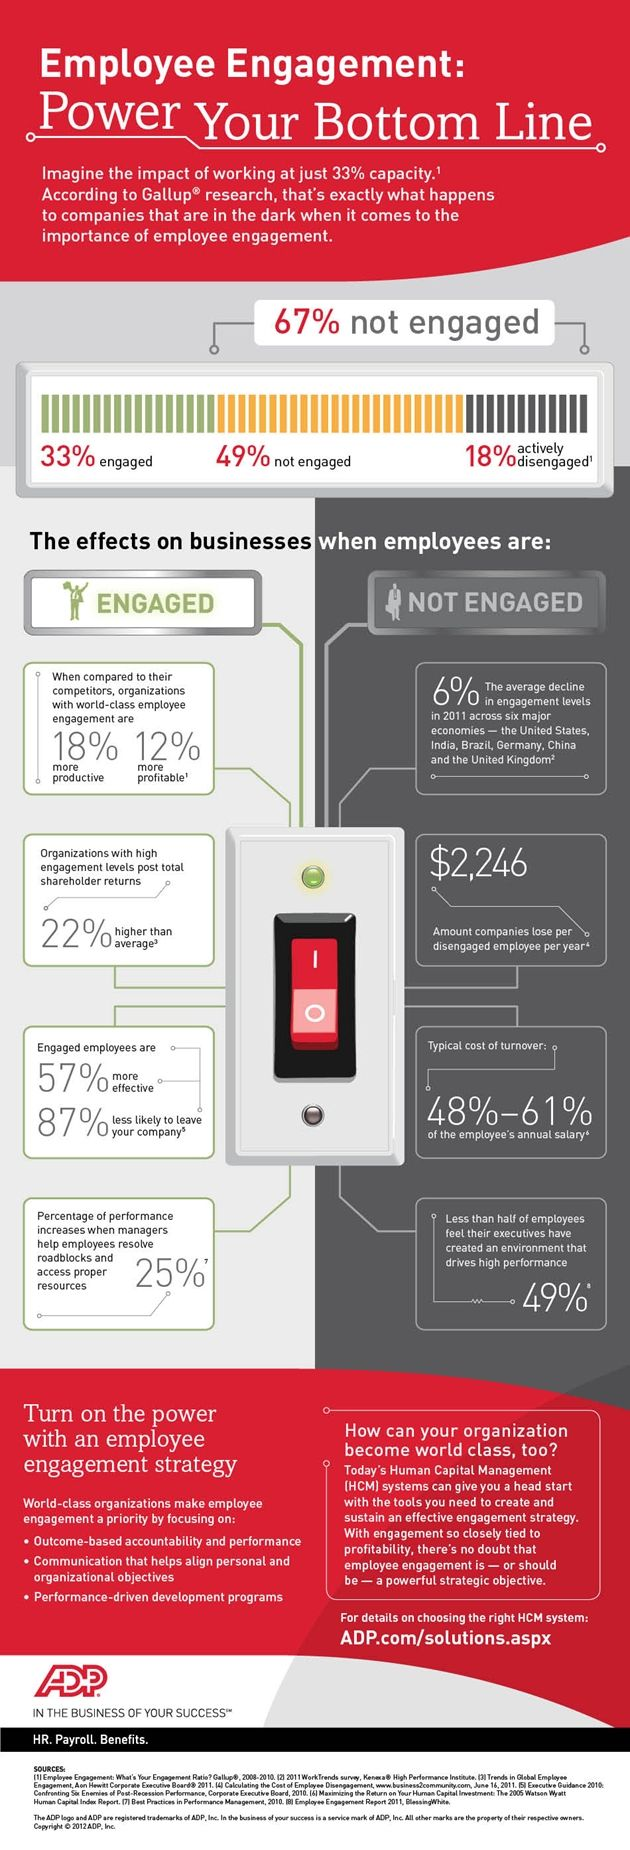 Power Your Bottom Line through Employee Engagement #infographic by @ADP #socialhr